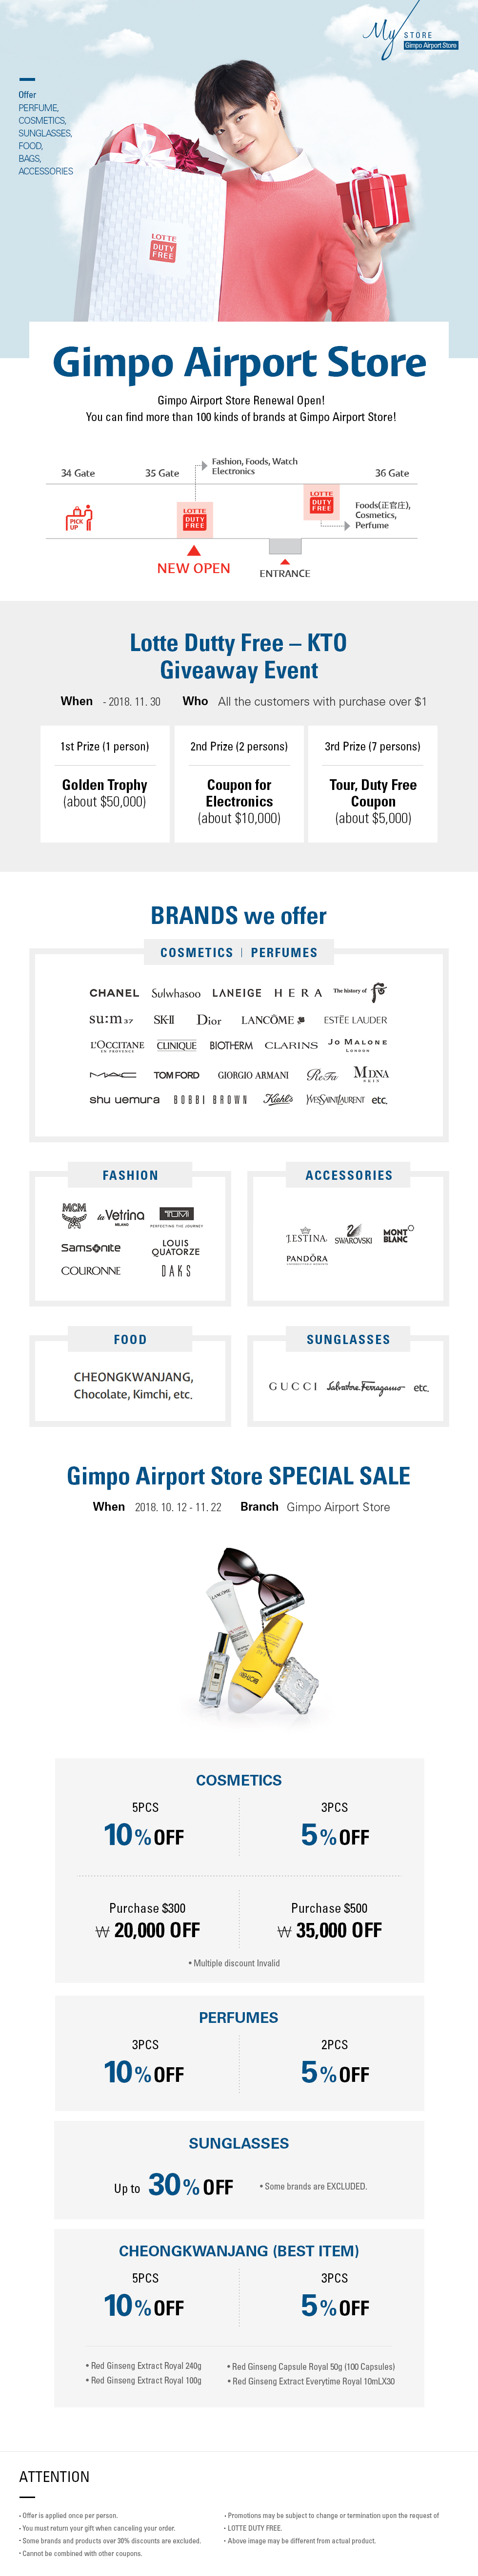 Event only at Gimpo Airport Store